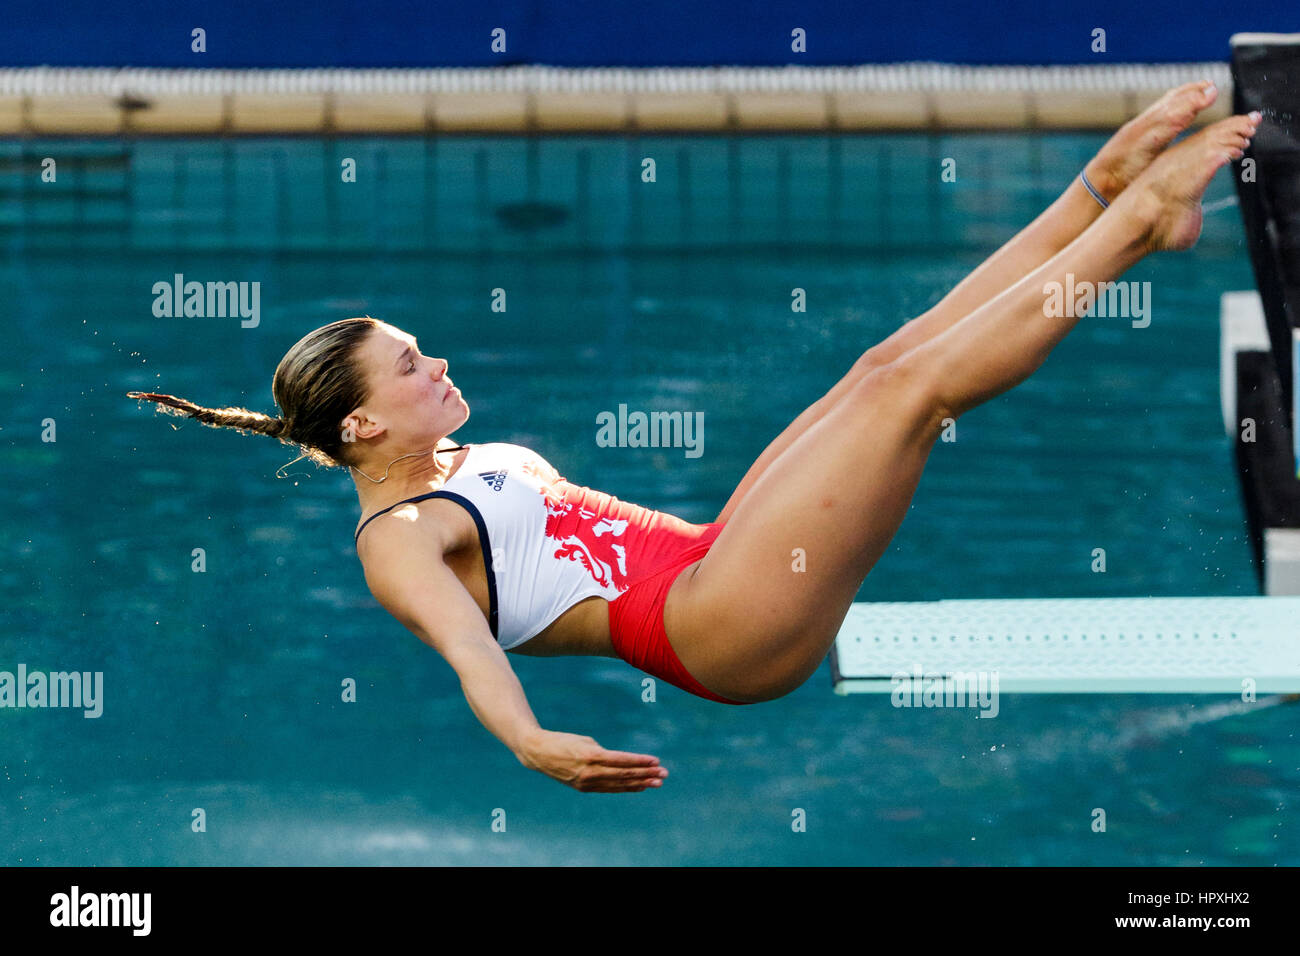 Rio de Janeiro, Brazil. 14 August 2016 Grace Reid (GBR) competes in the Women Diving Springboard 3m final at the - Stock Image